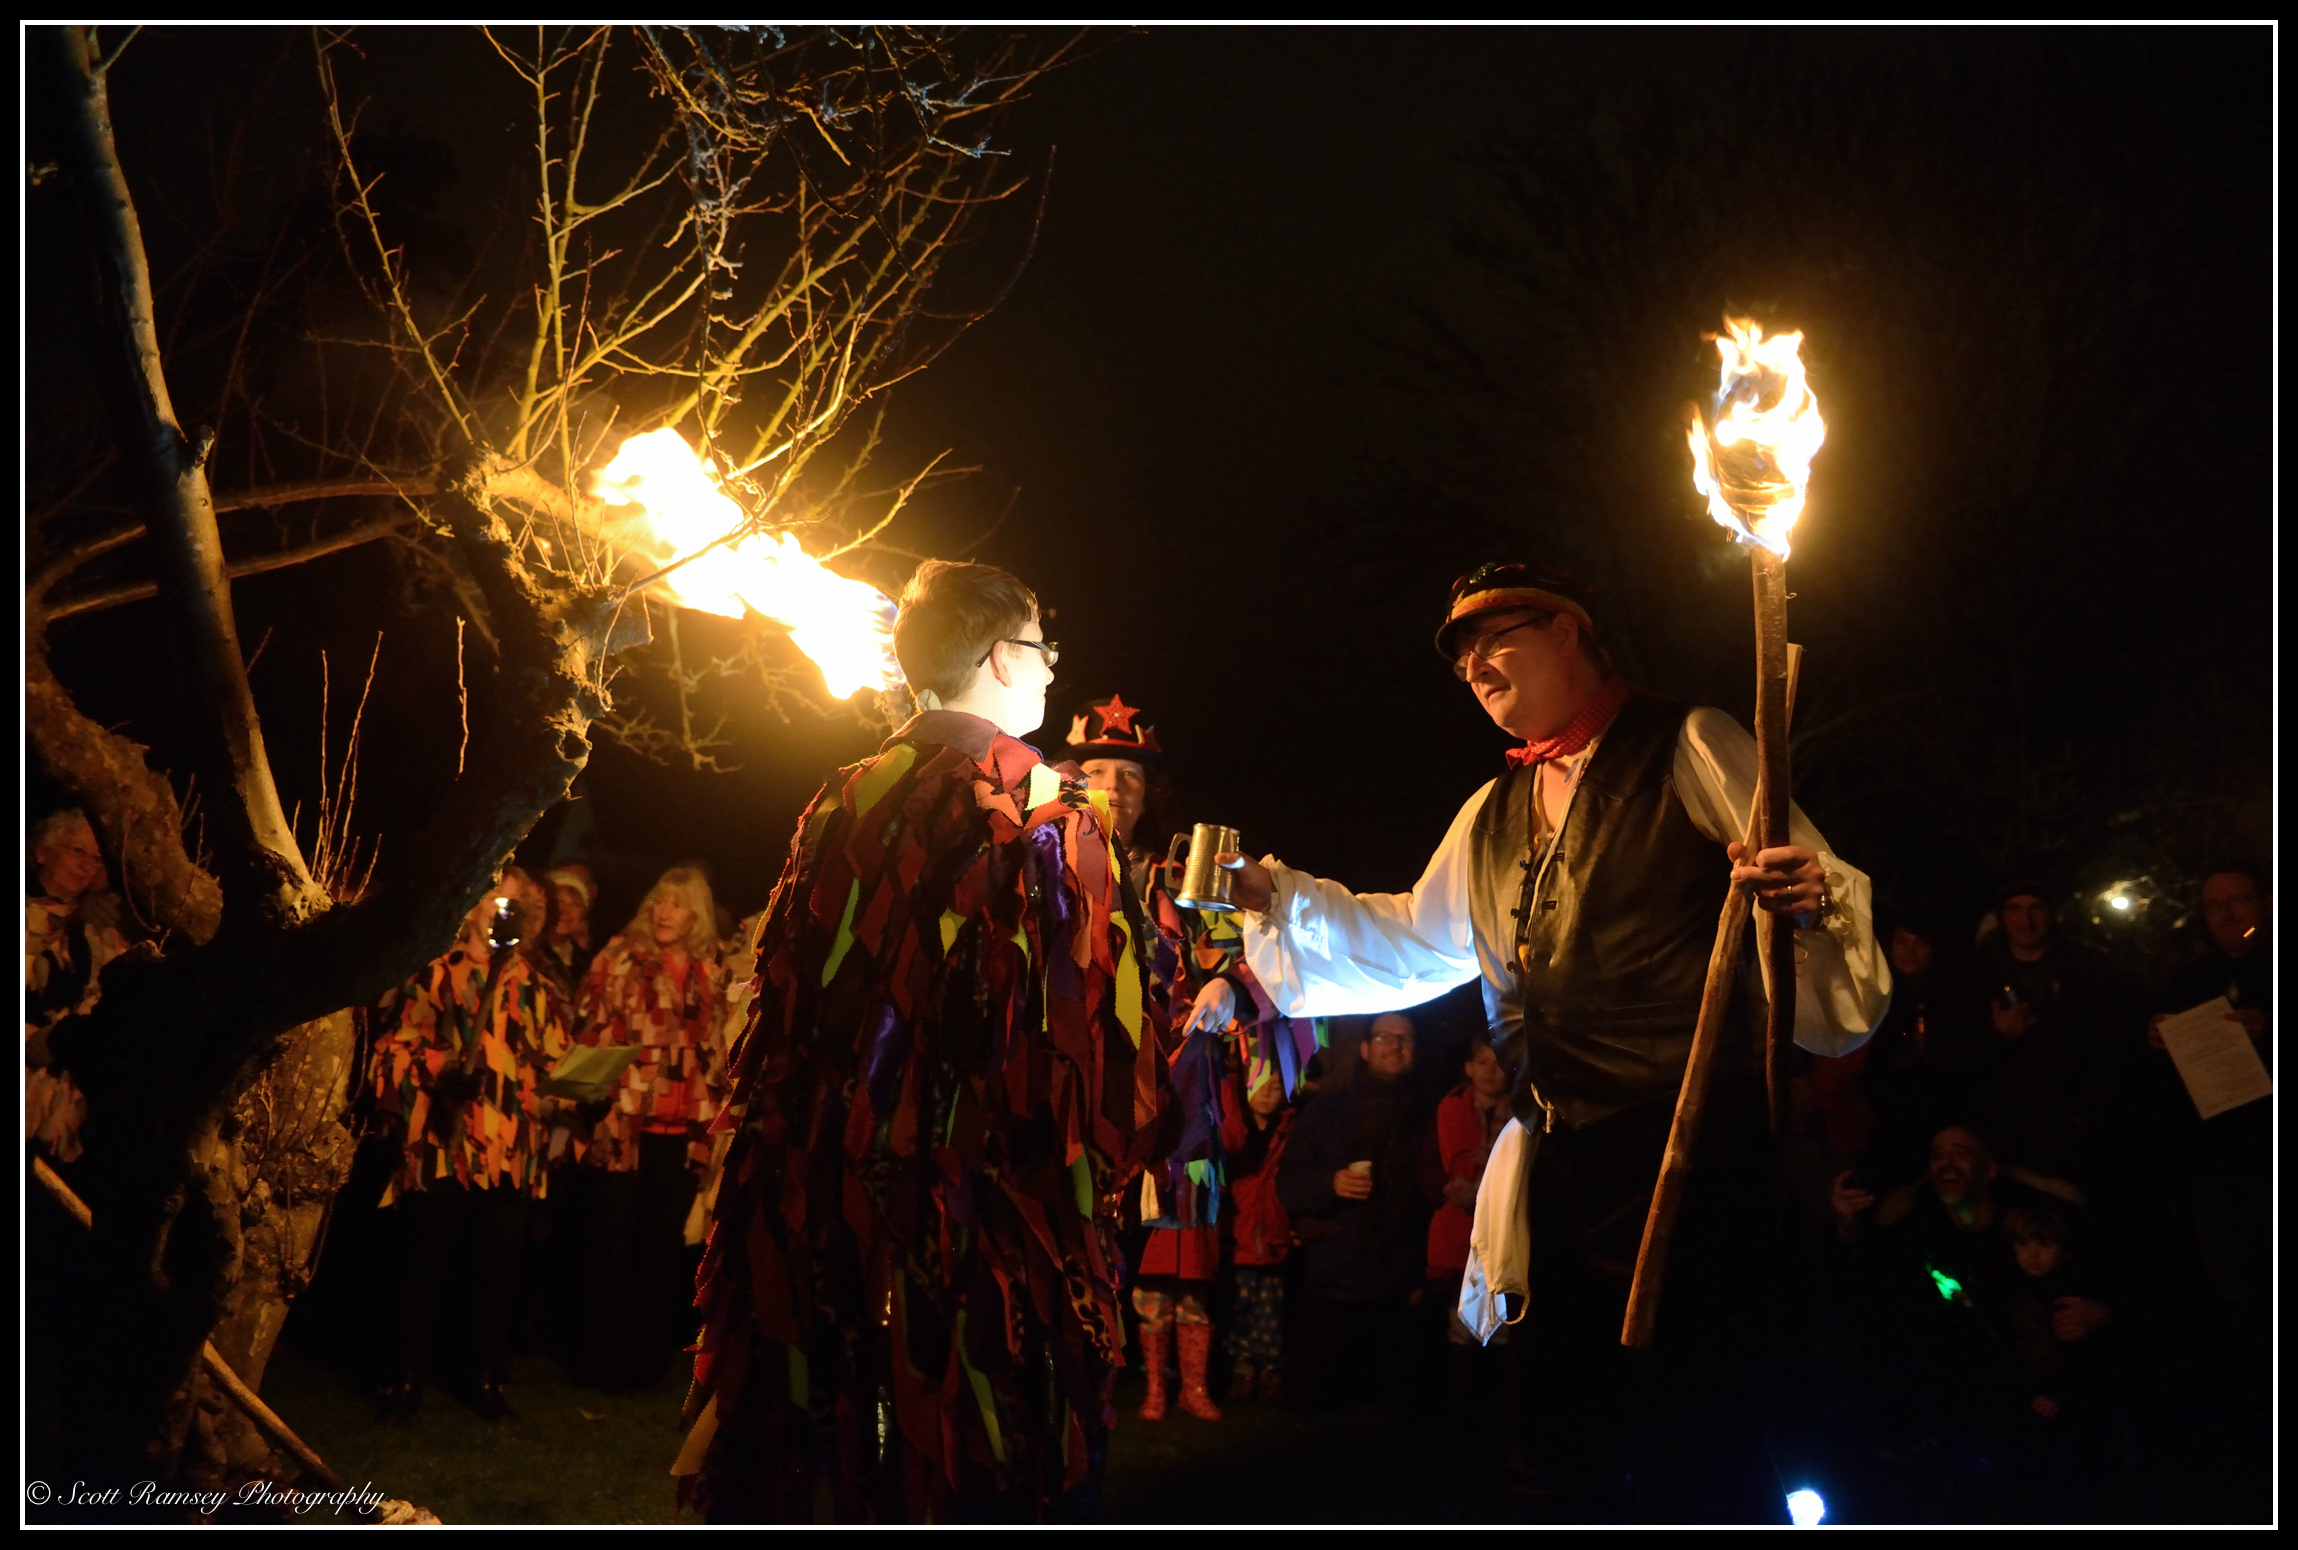 In an apple orchard in Tarring village, West Sussex, the wassail takes place.